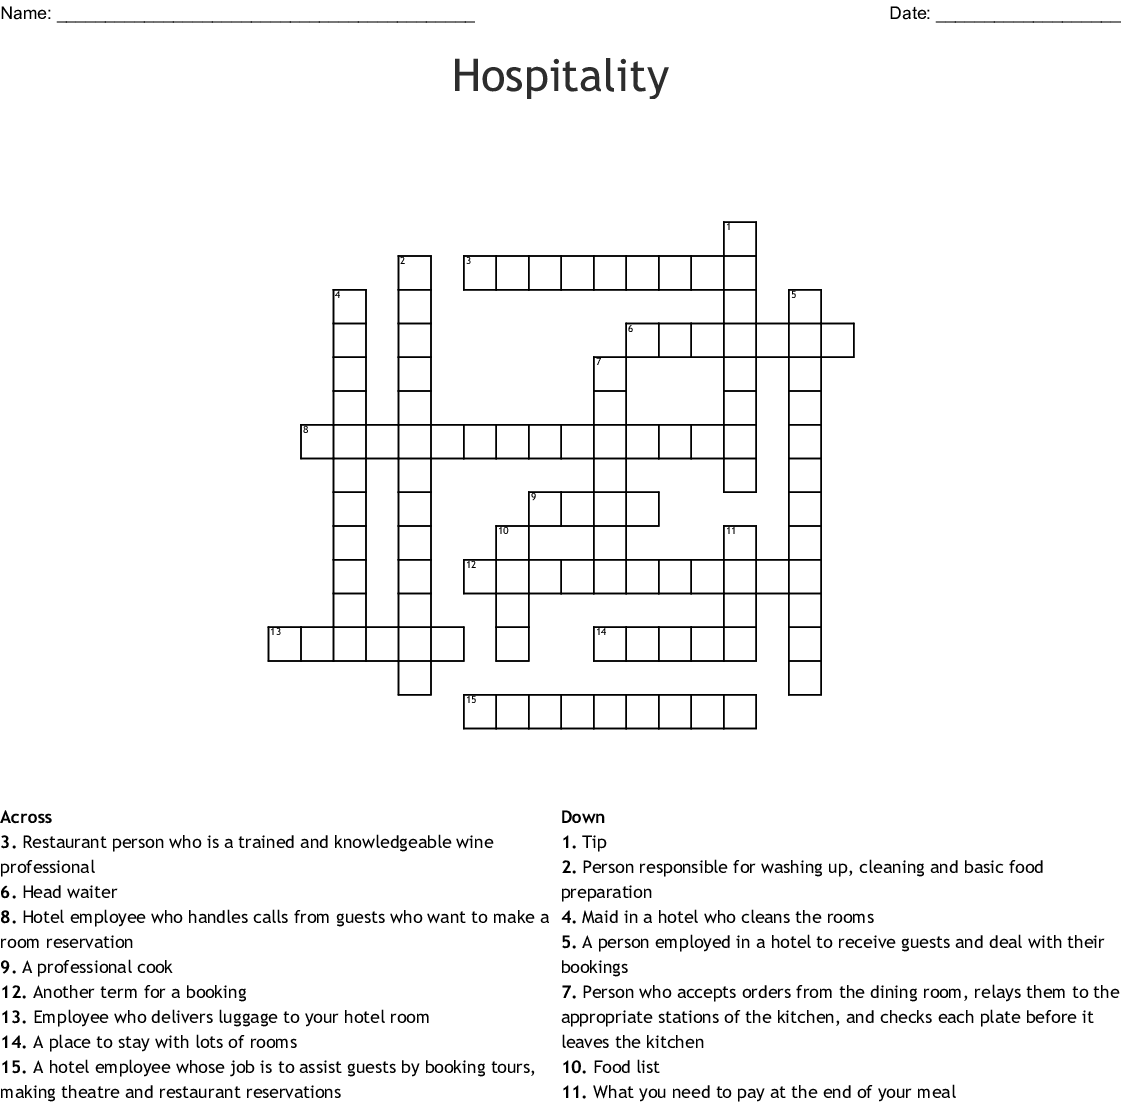 Hospitality Crossword